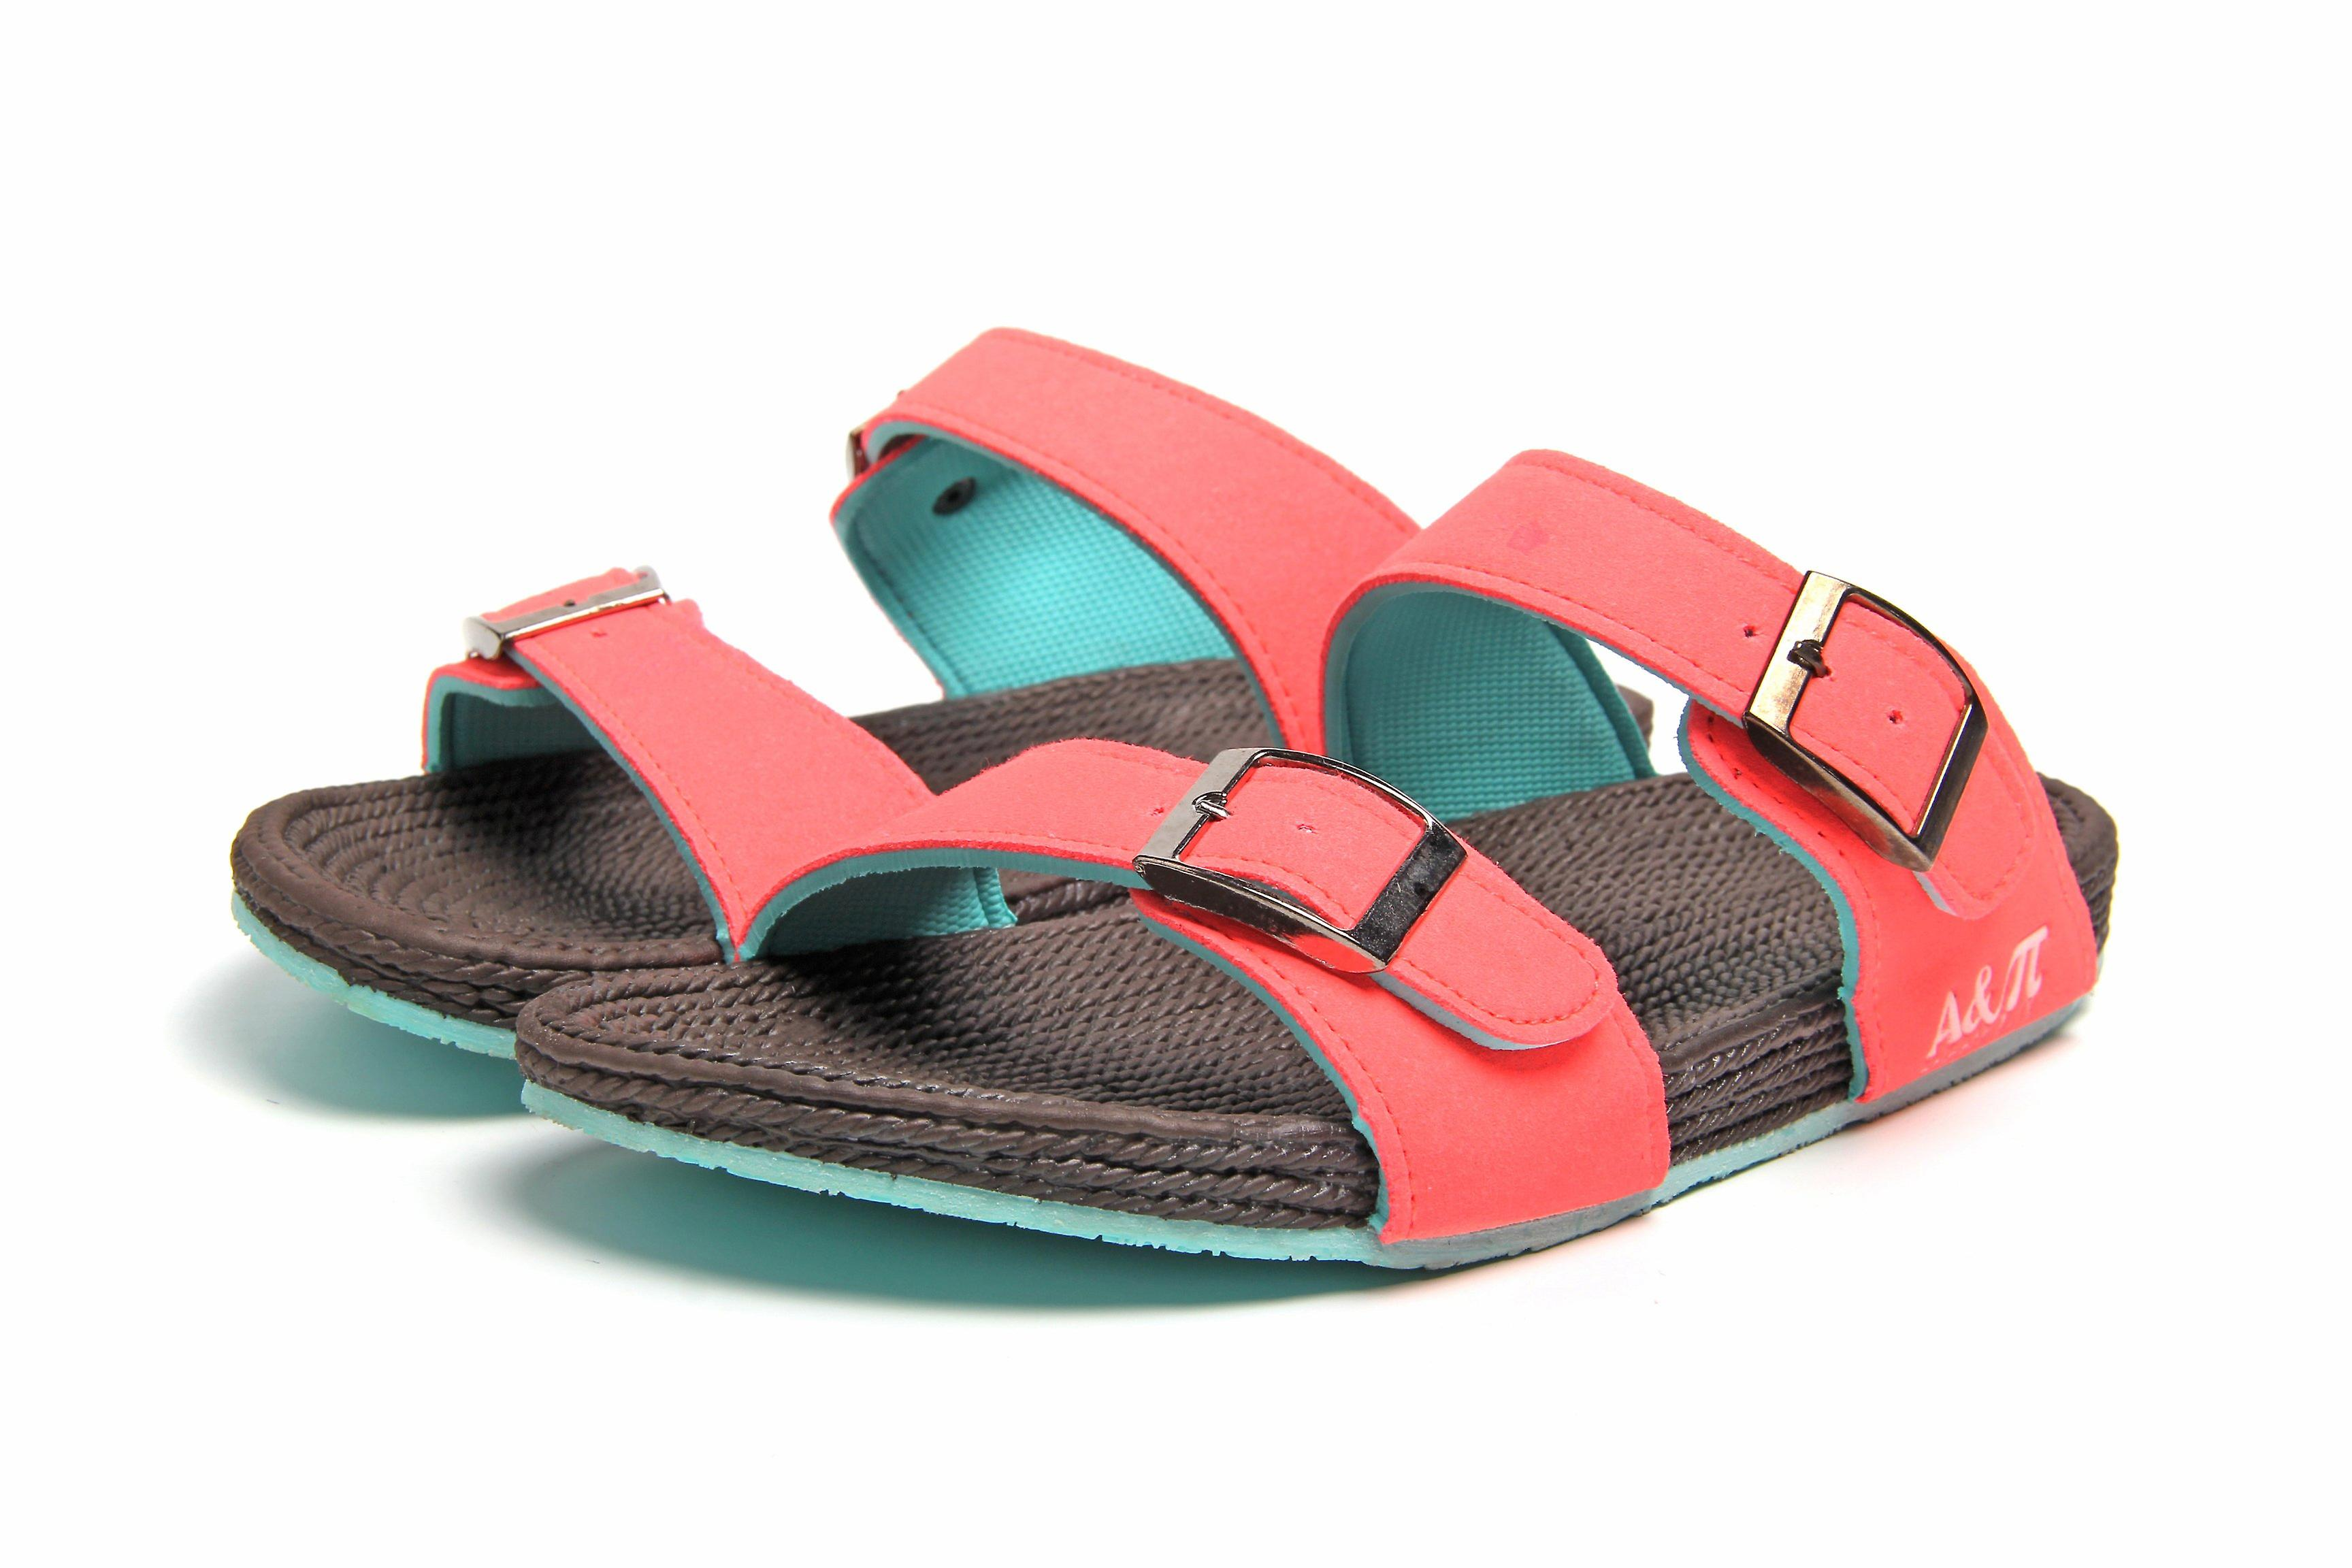 Atlantis Shoes Women Supportive Cushioned Comfortable Sandals Dual Band Brown-fuchsia